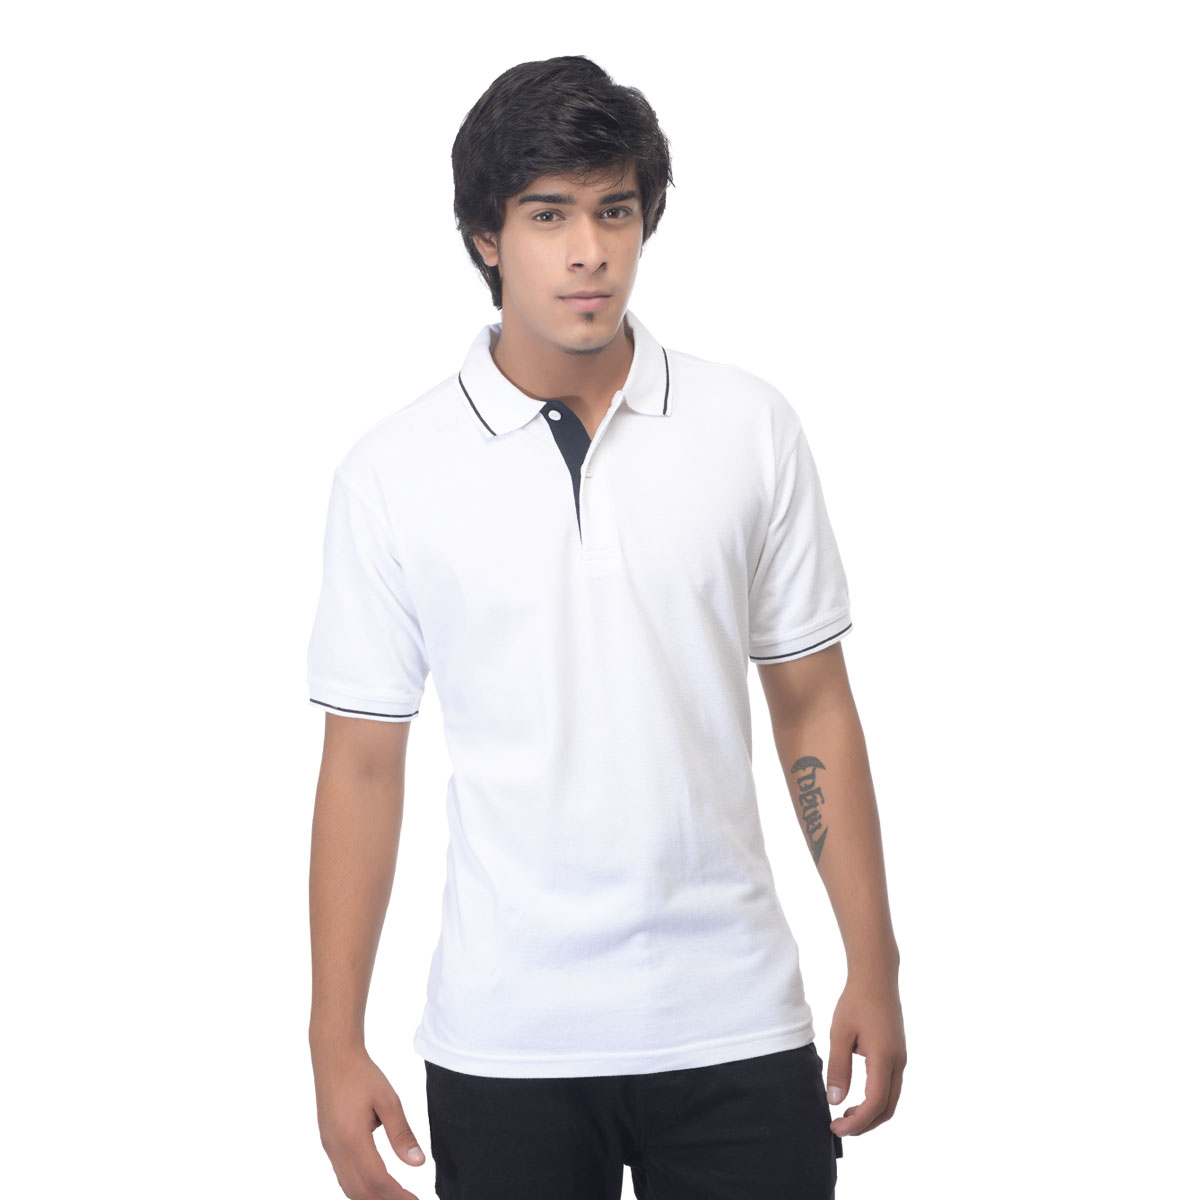 Fashion men 39 s apparel western wear t shirts for Full sleeve polo t shirts